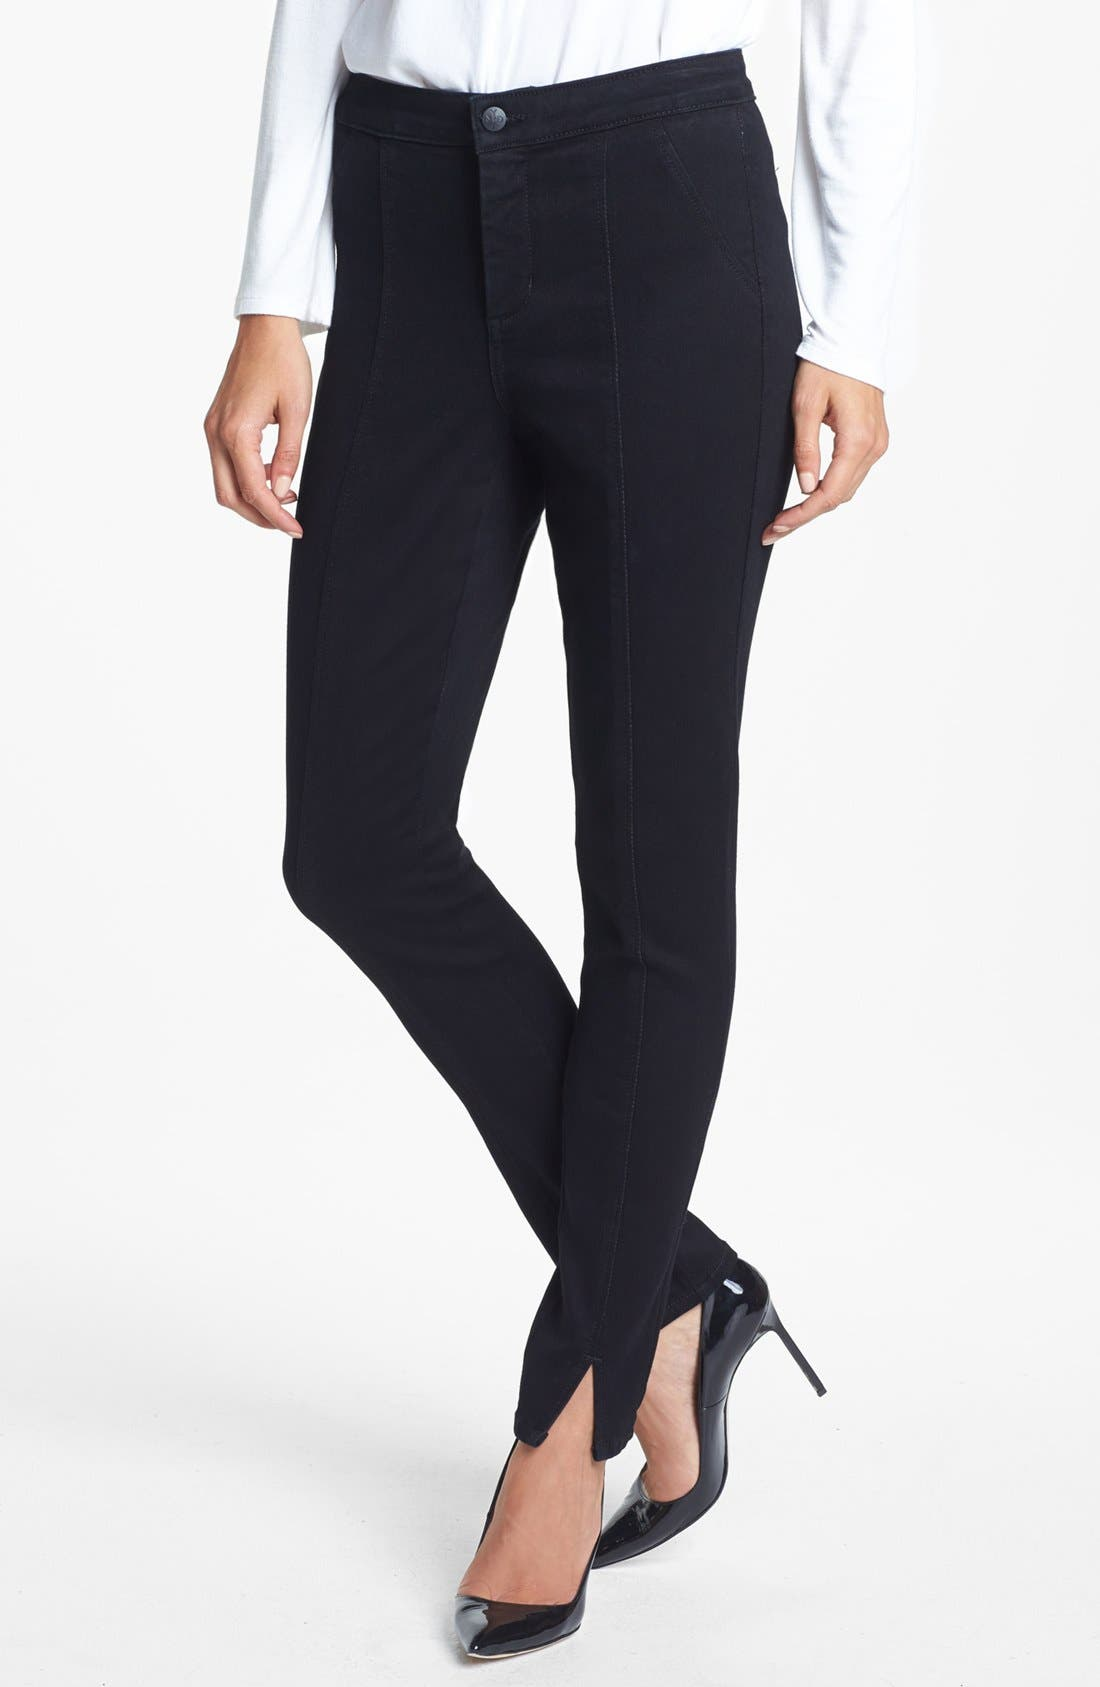 Main Image - NYDJ 'Lotus' Stretch Skinny Jeans (Overdye Black)